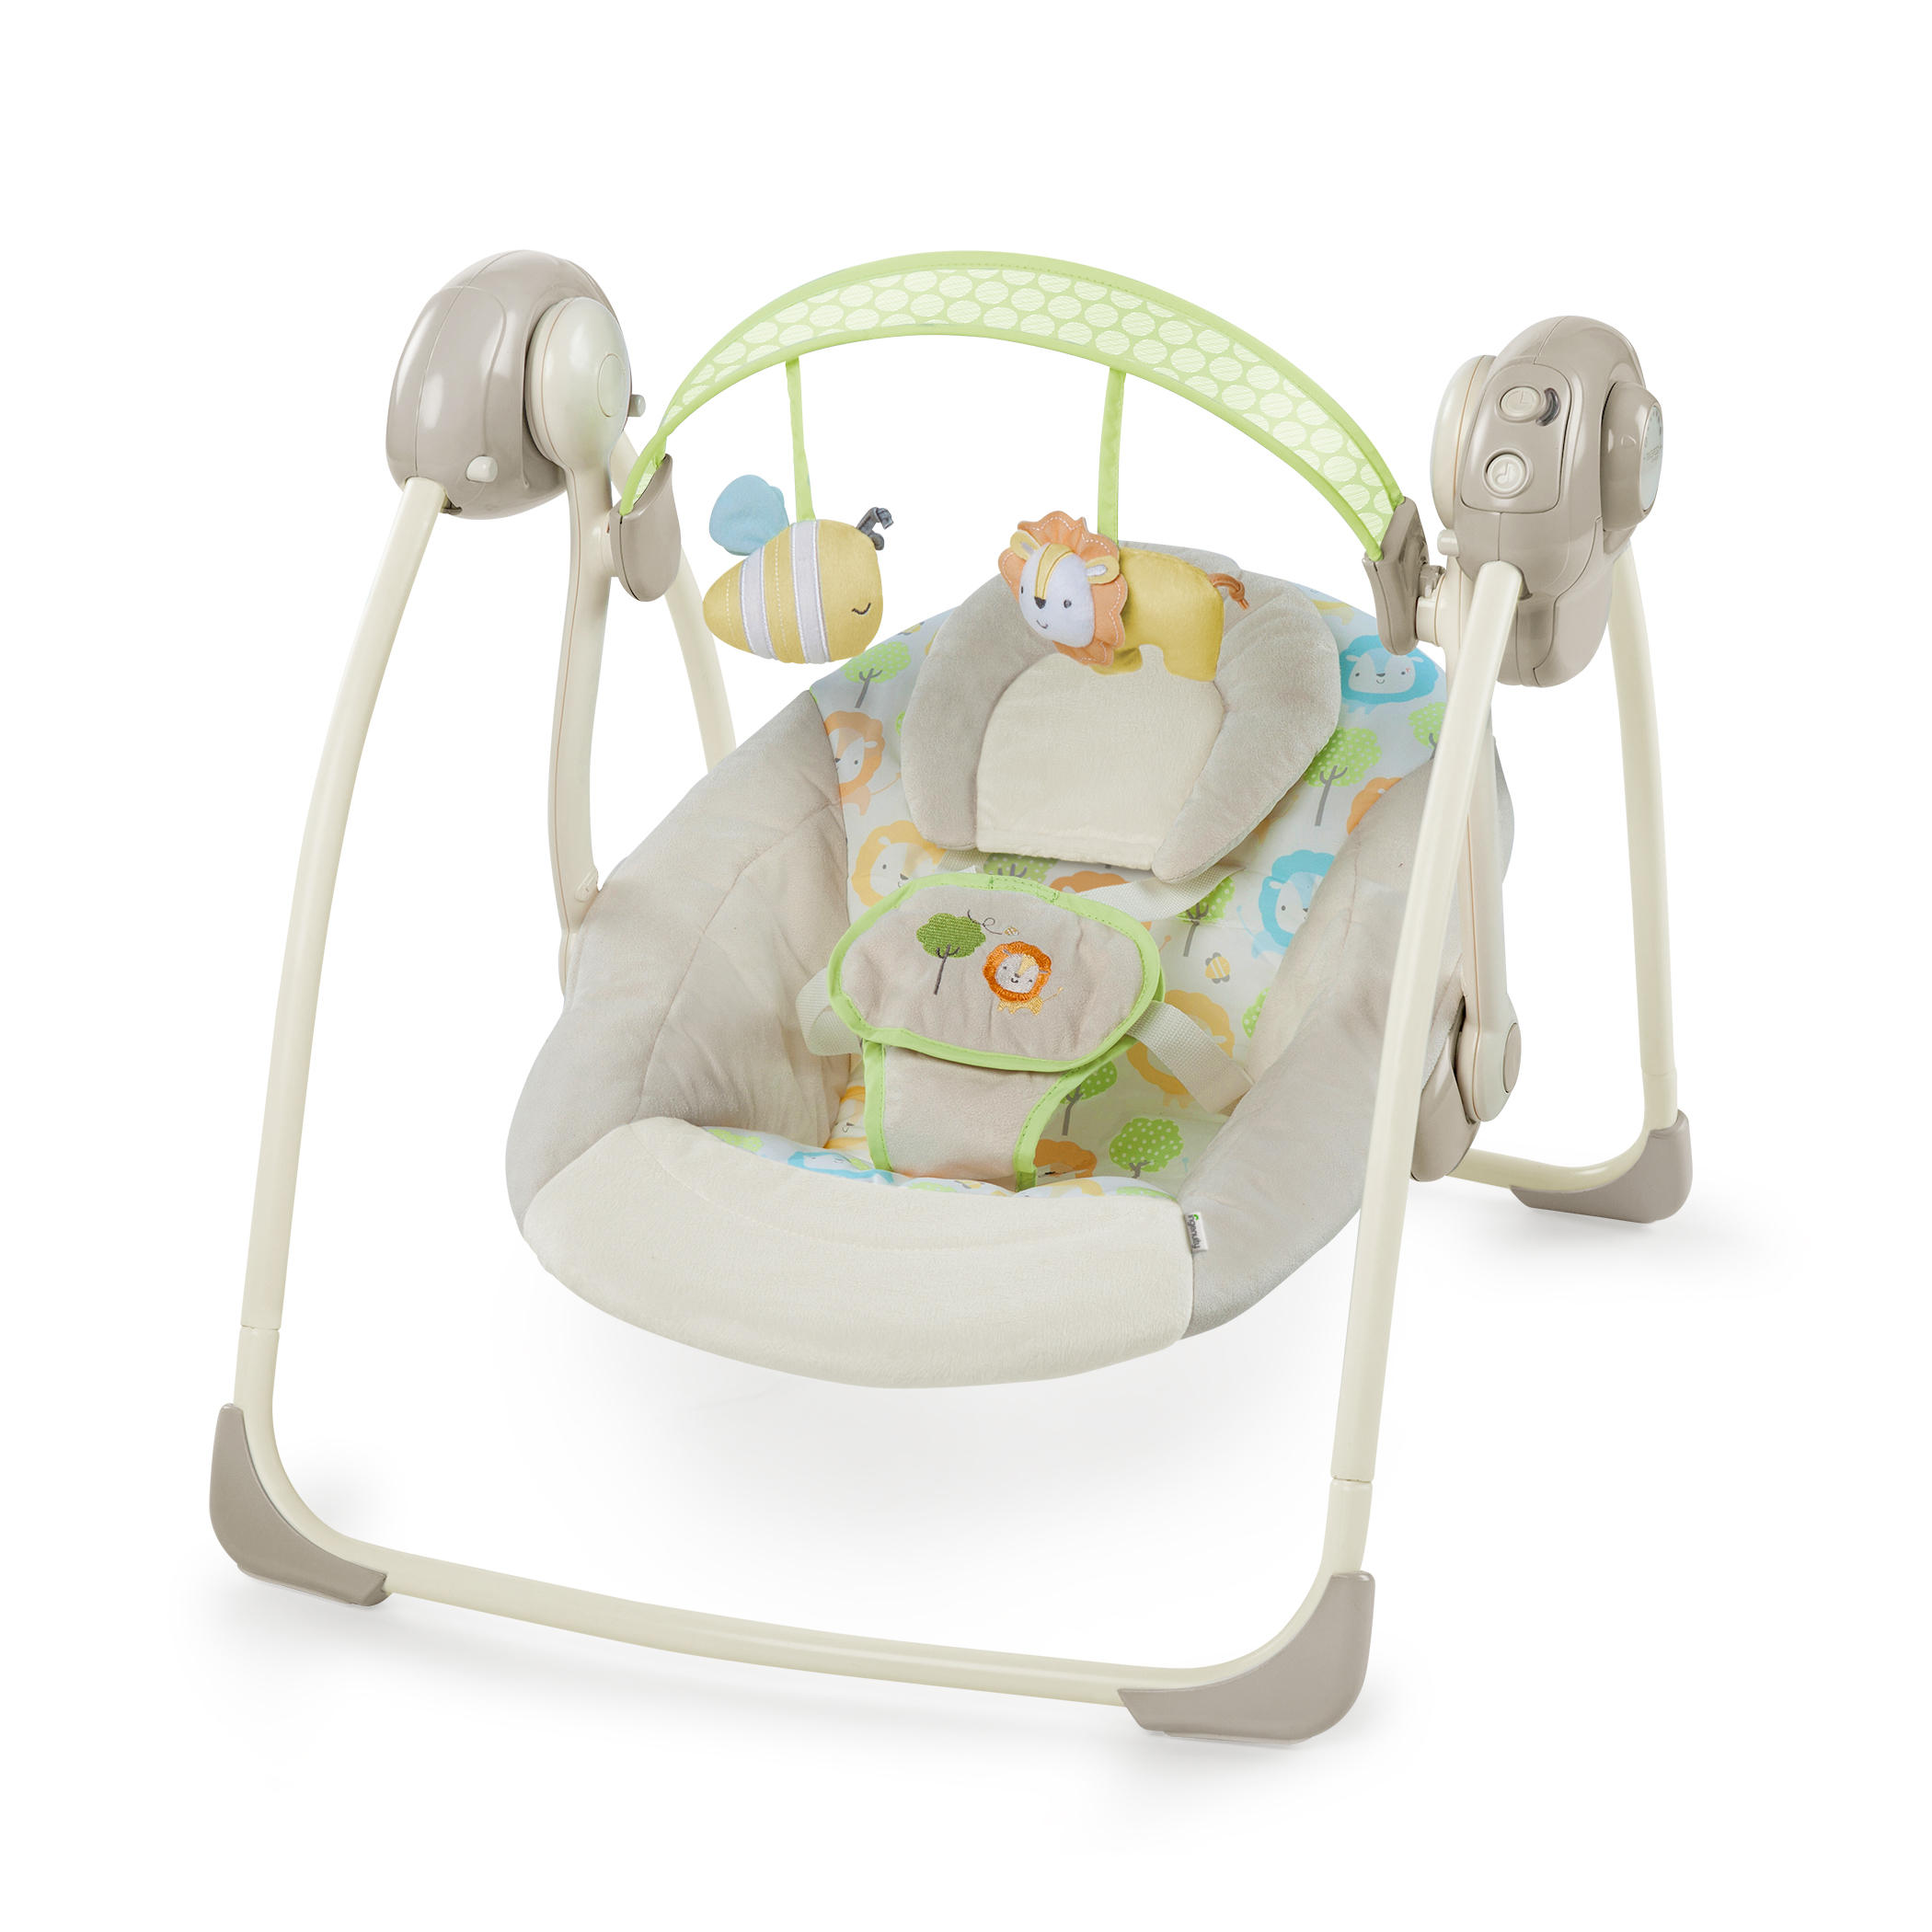 Ingenuity Soothe 'n Delight Portable Swing Sunny Snuggles by Ingenuity